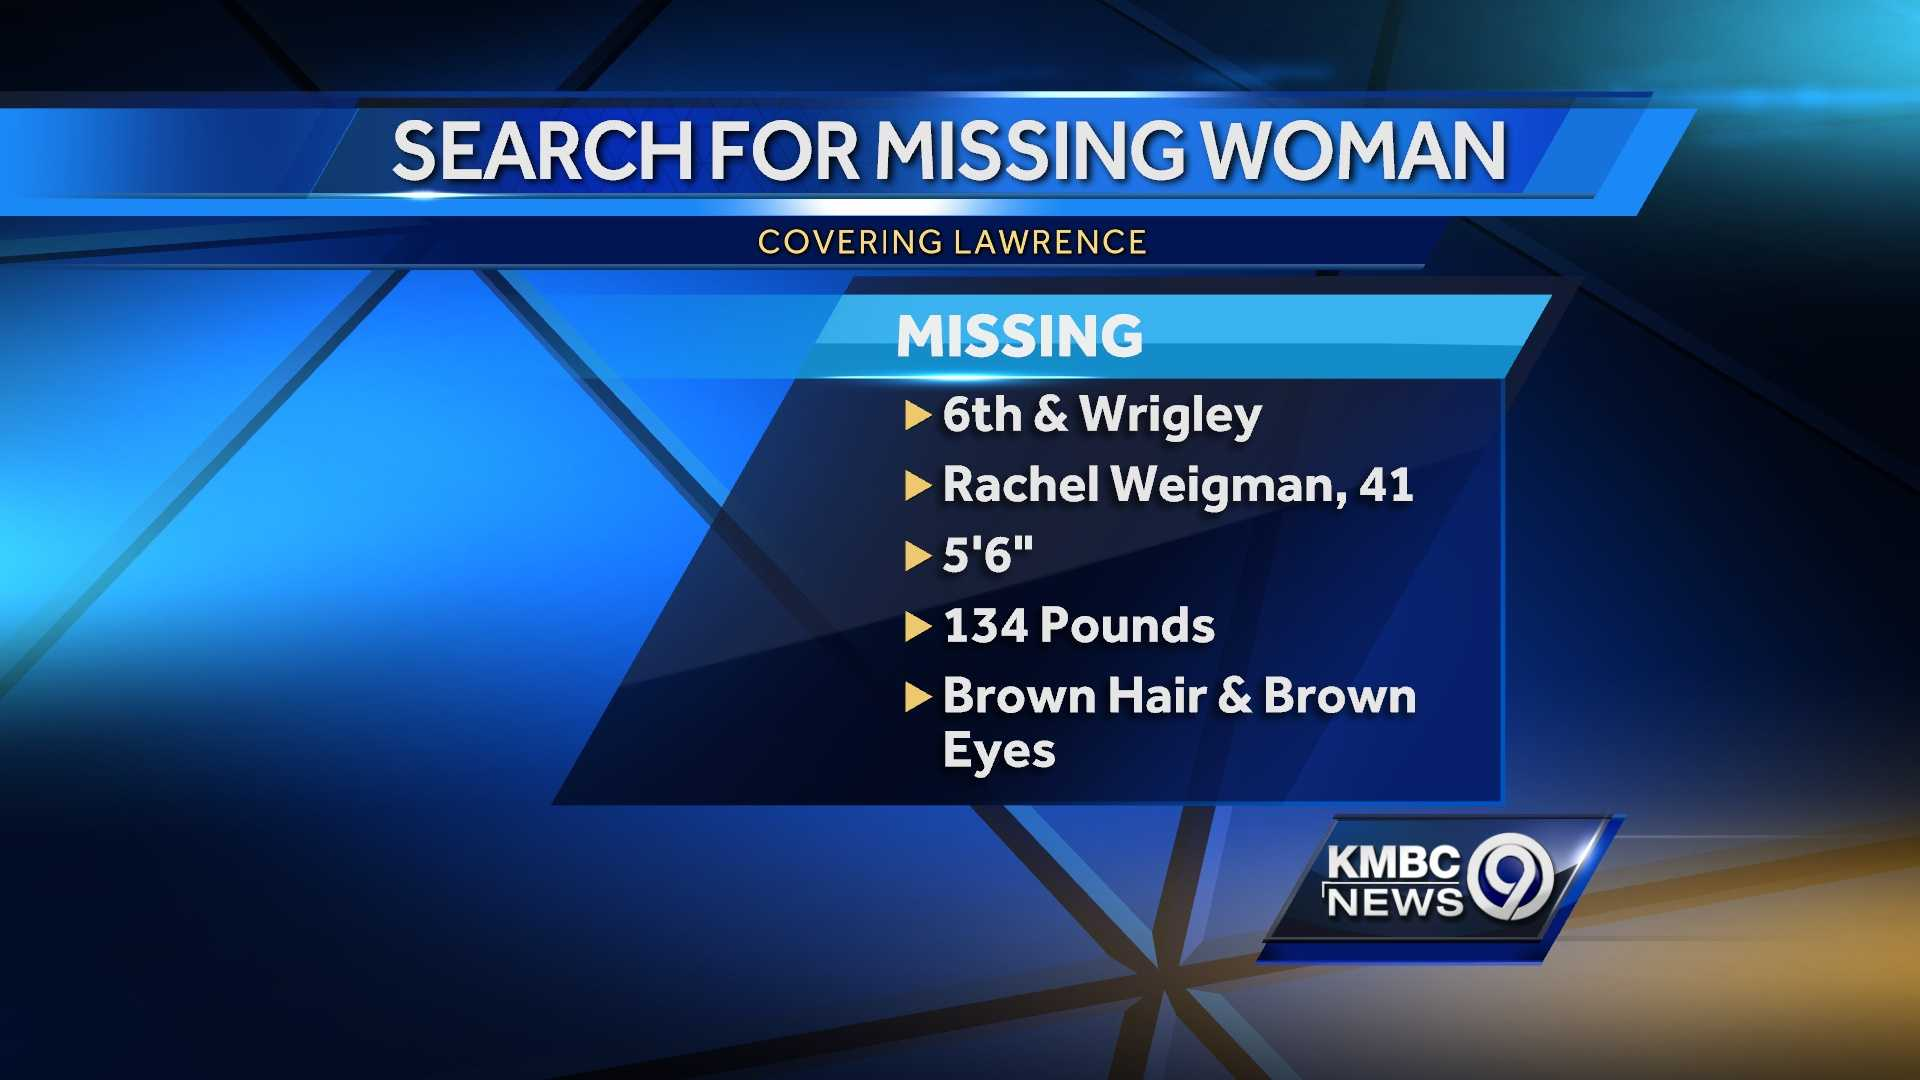 Police searching for missing Lawrence woman